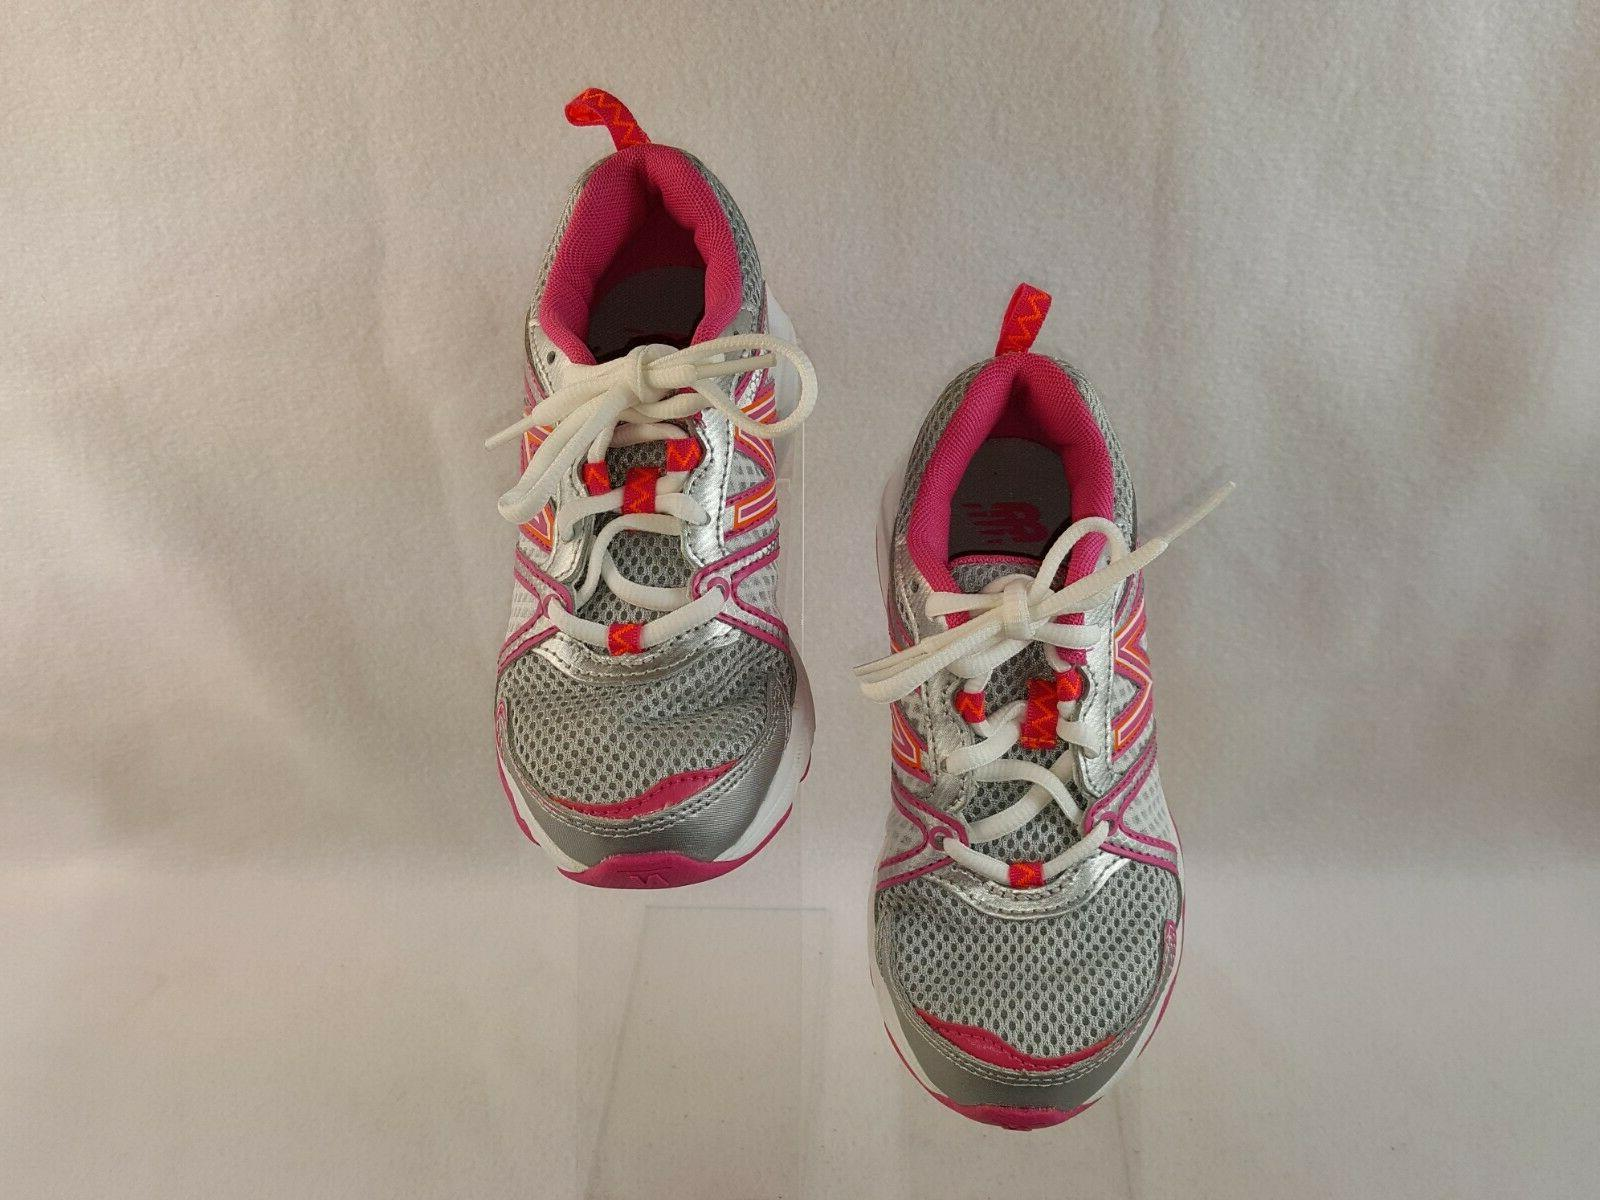 New Balance Shoes, Kids Size Wide, Silver/Pink